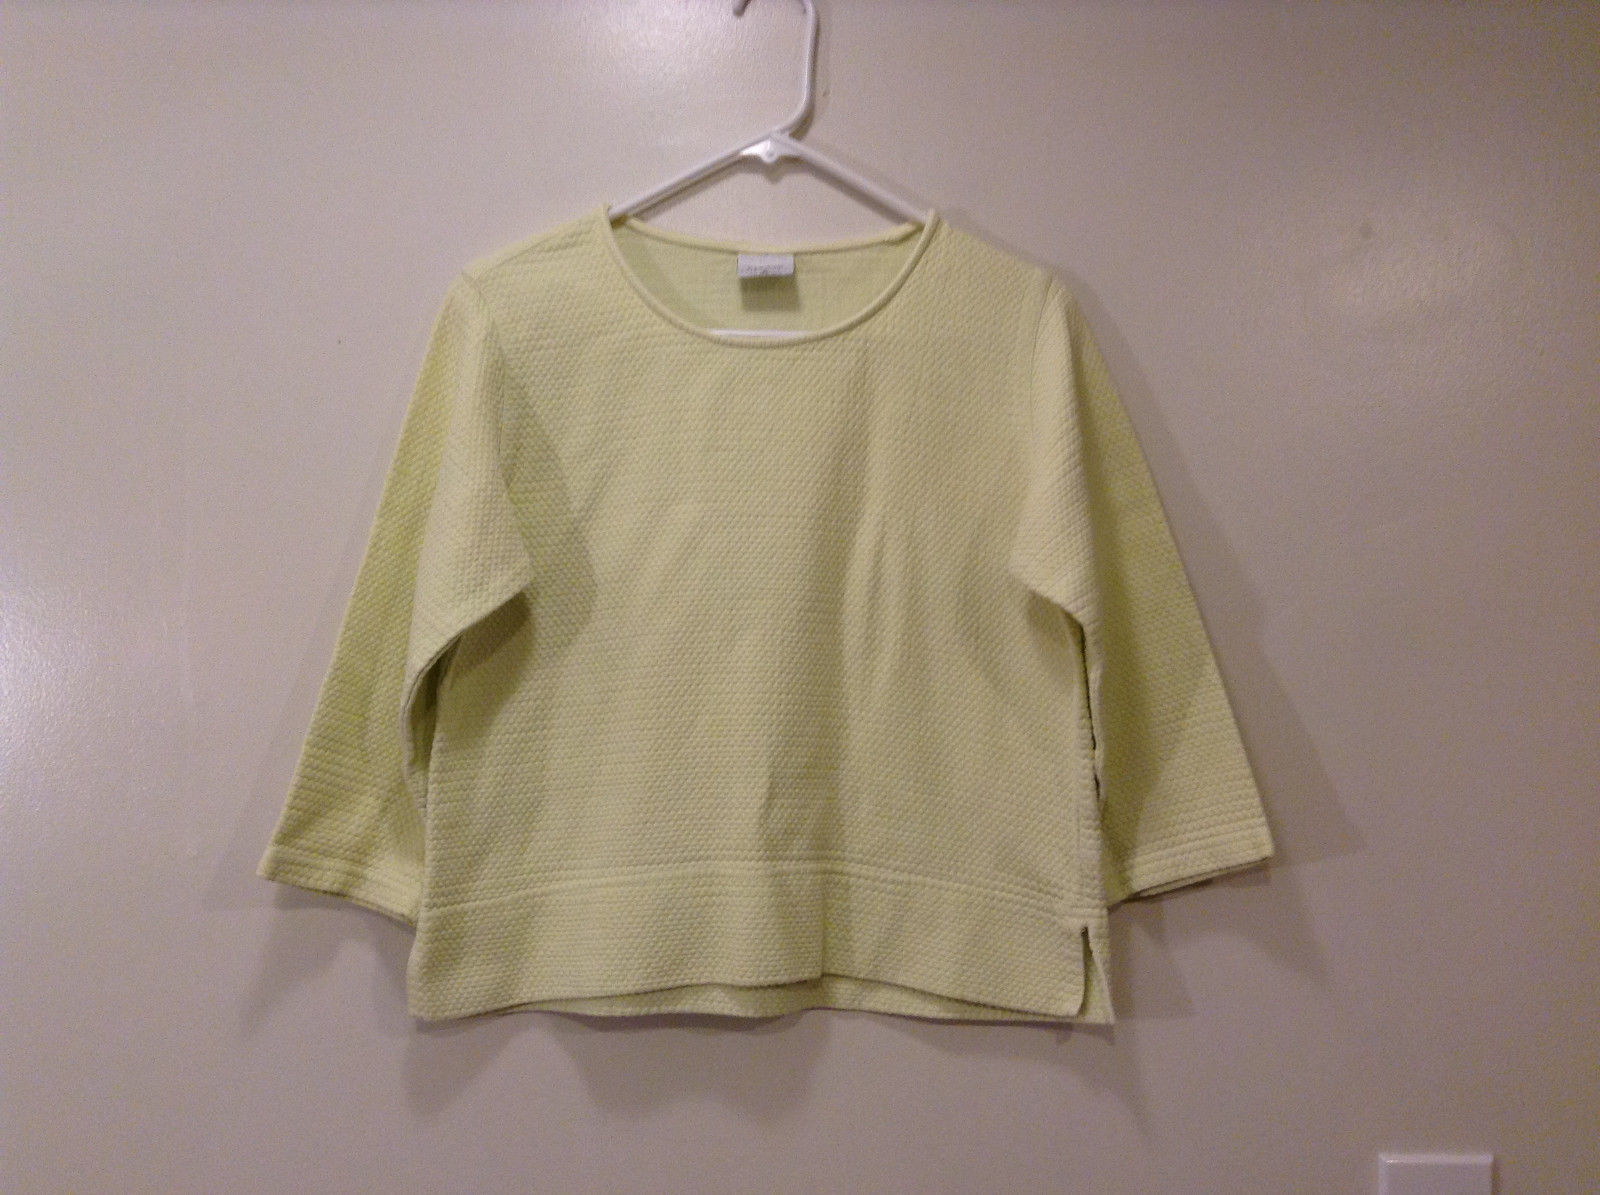 C.M.C. by Color Me Cotton Very Light Yellow/Green Blouse T-shirt, Size M